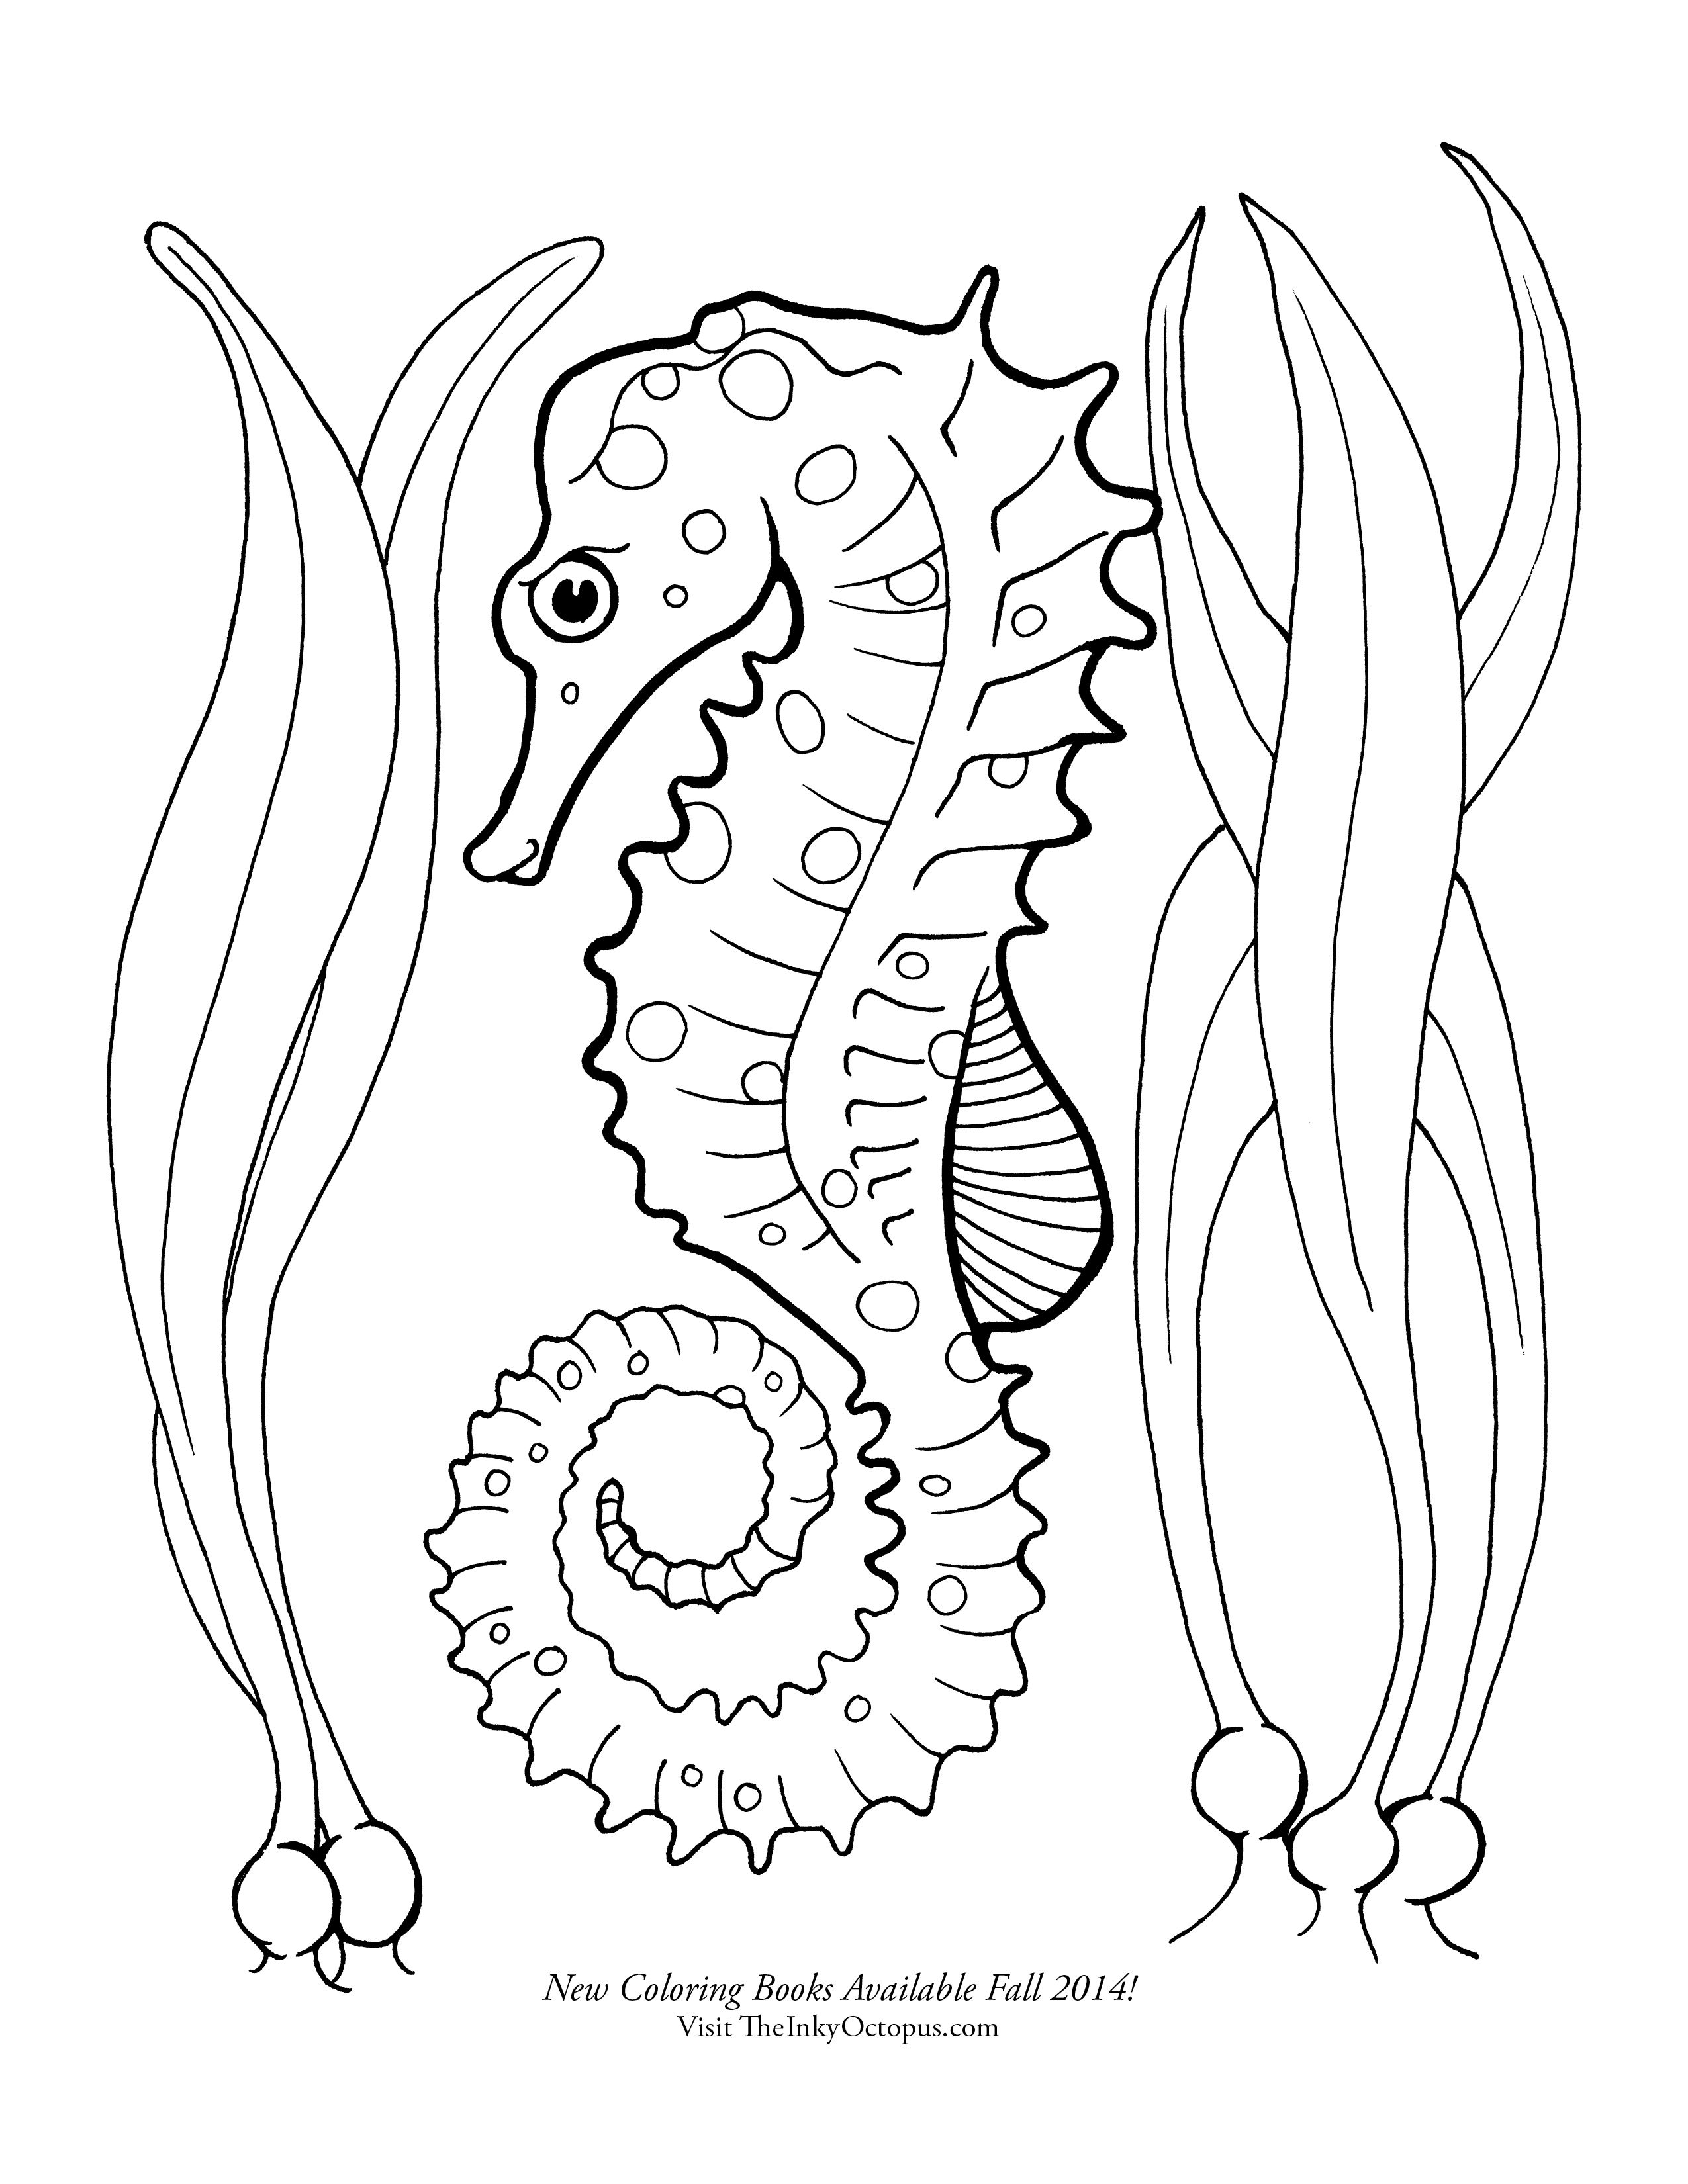 Seahorse Coloring Page Google Search Butterfly Coloring Page Horse Coloring Pages Horse Coloring